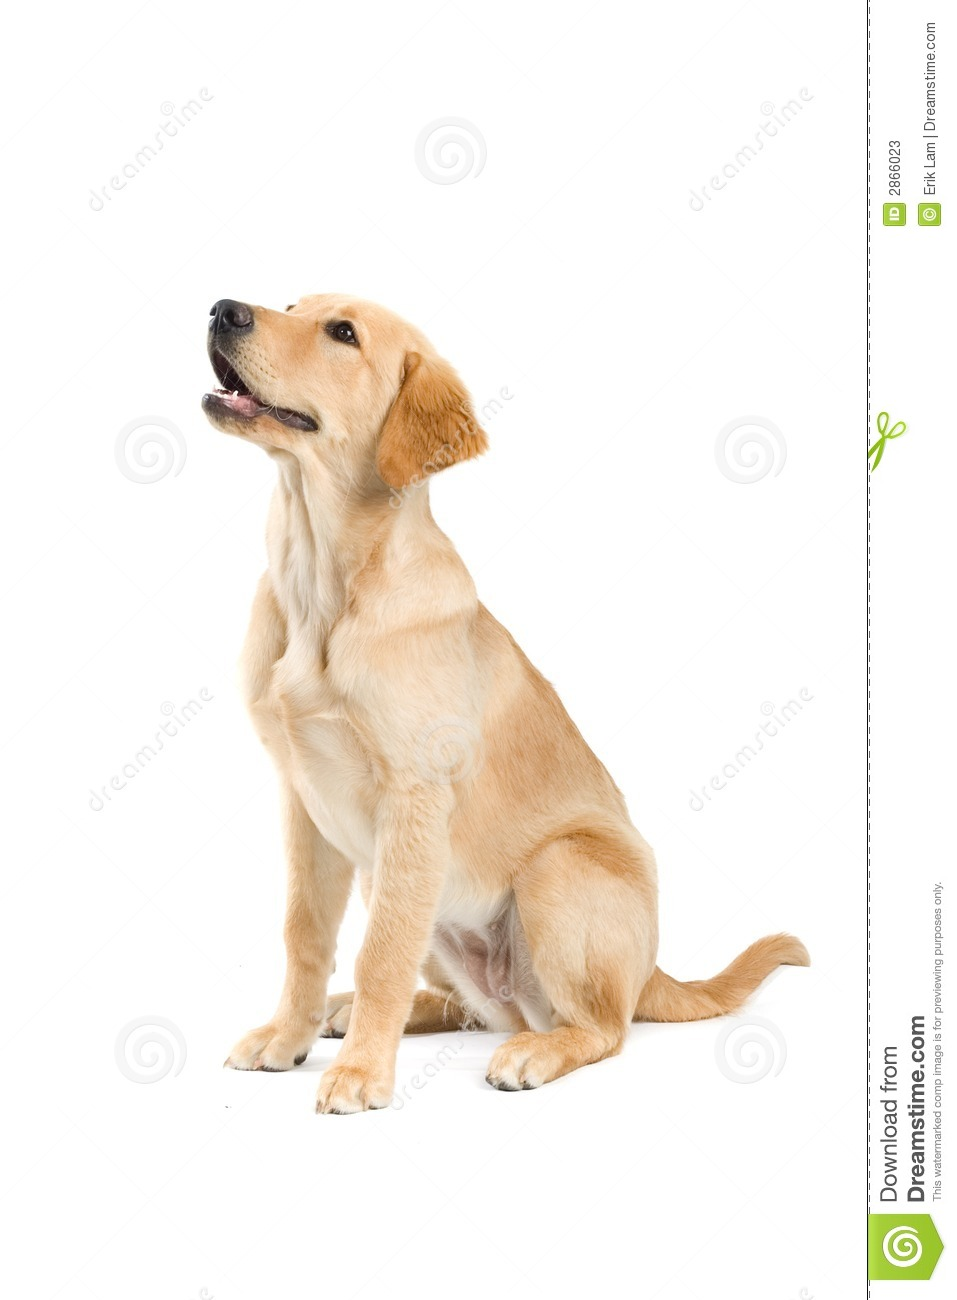 Sitting dog stock photos image 2866023 for Be a dog sitter